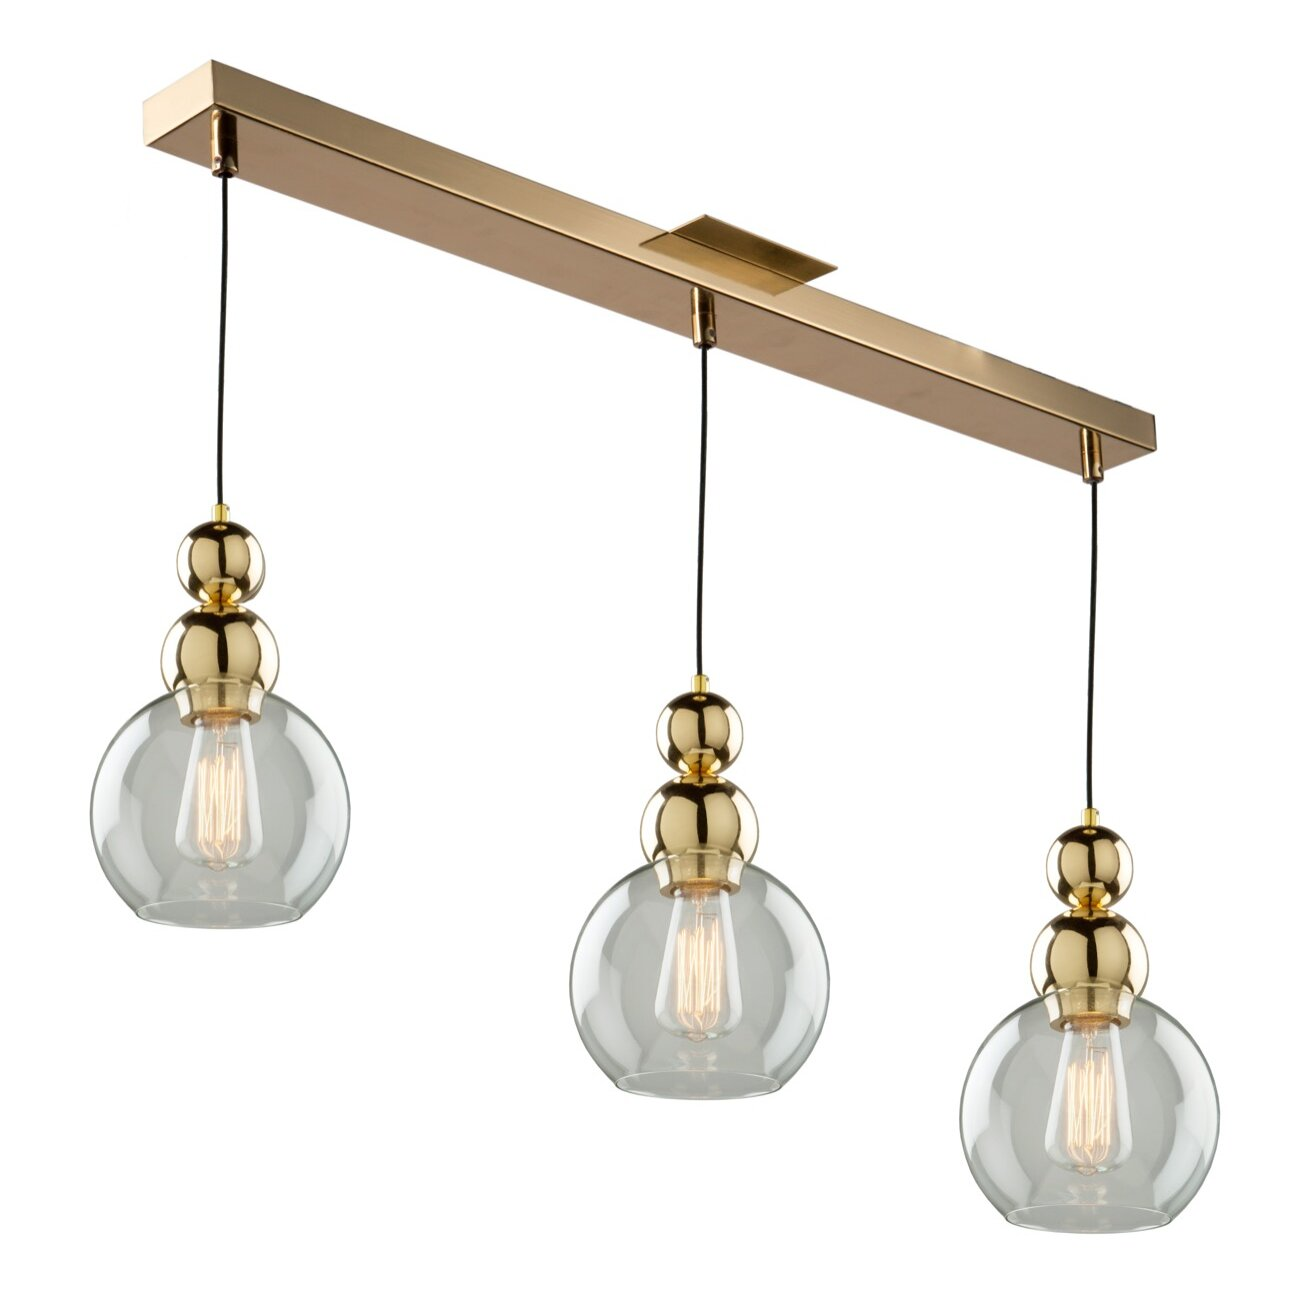 Kitchen Island Pendant Lighting: Artcraft Lighting Popular 3 Light Kitchen Island Pendant